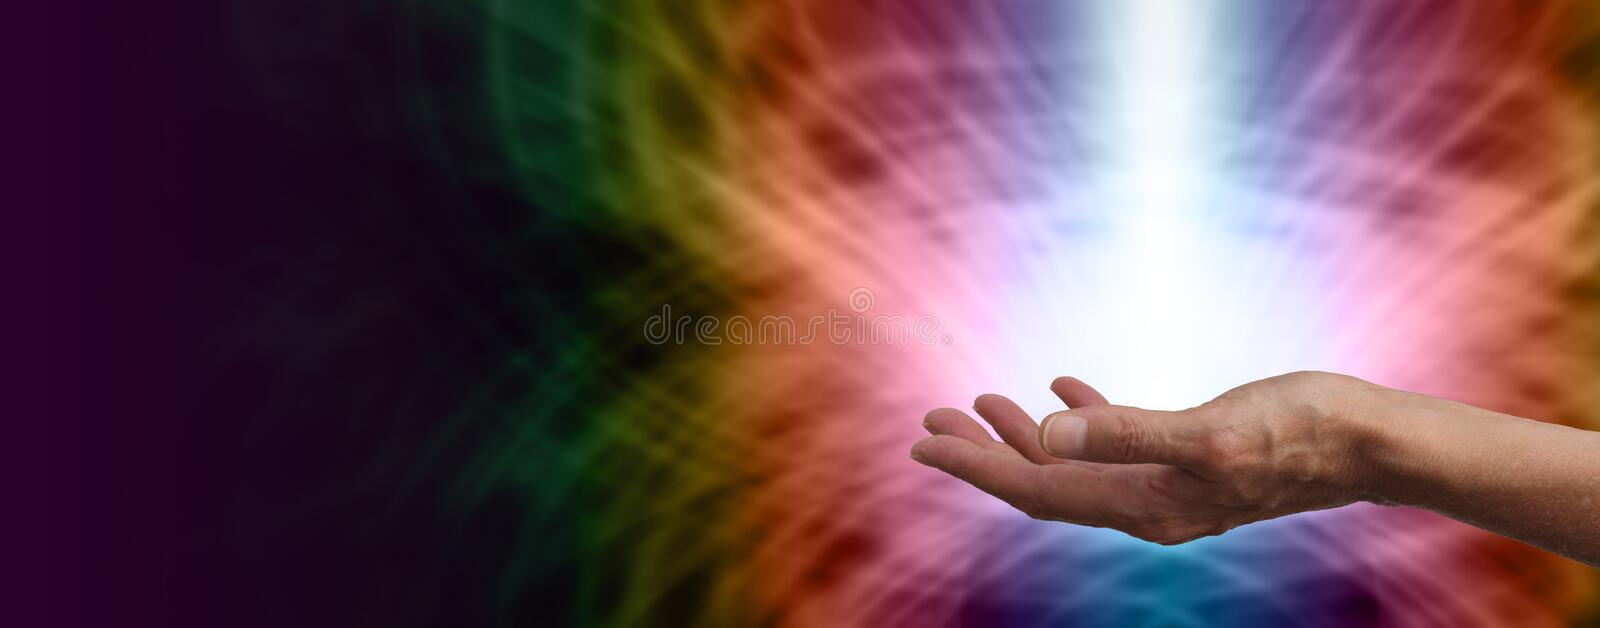 Healer with vibrant healing energy stock photos